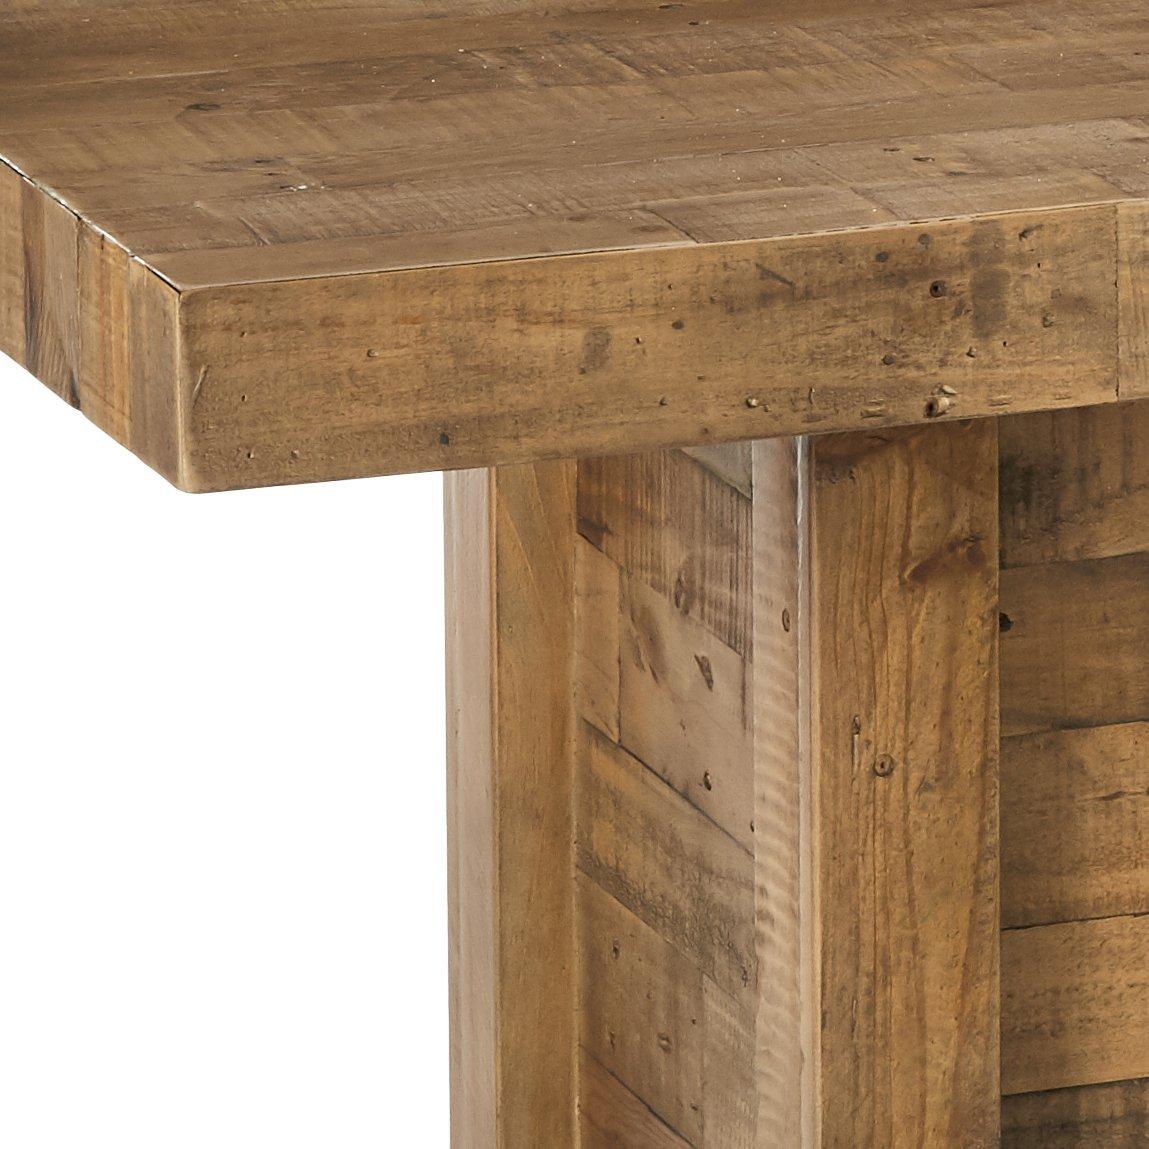 Signature Design by Ashley D775-25 Sommerford Dining Table, Summerford by Signature Design by Ashley (Image #5)